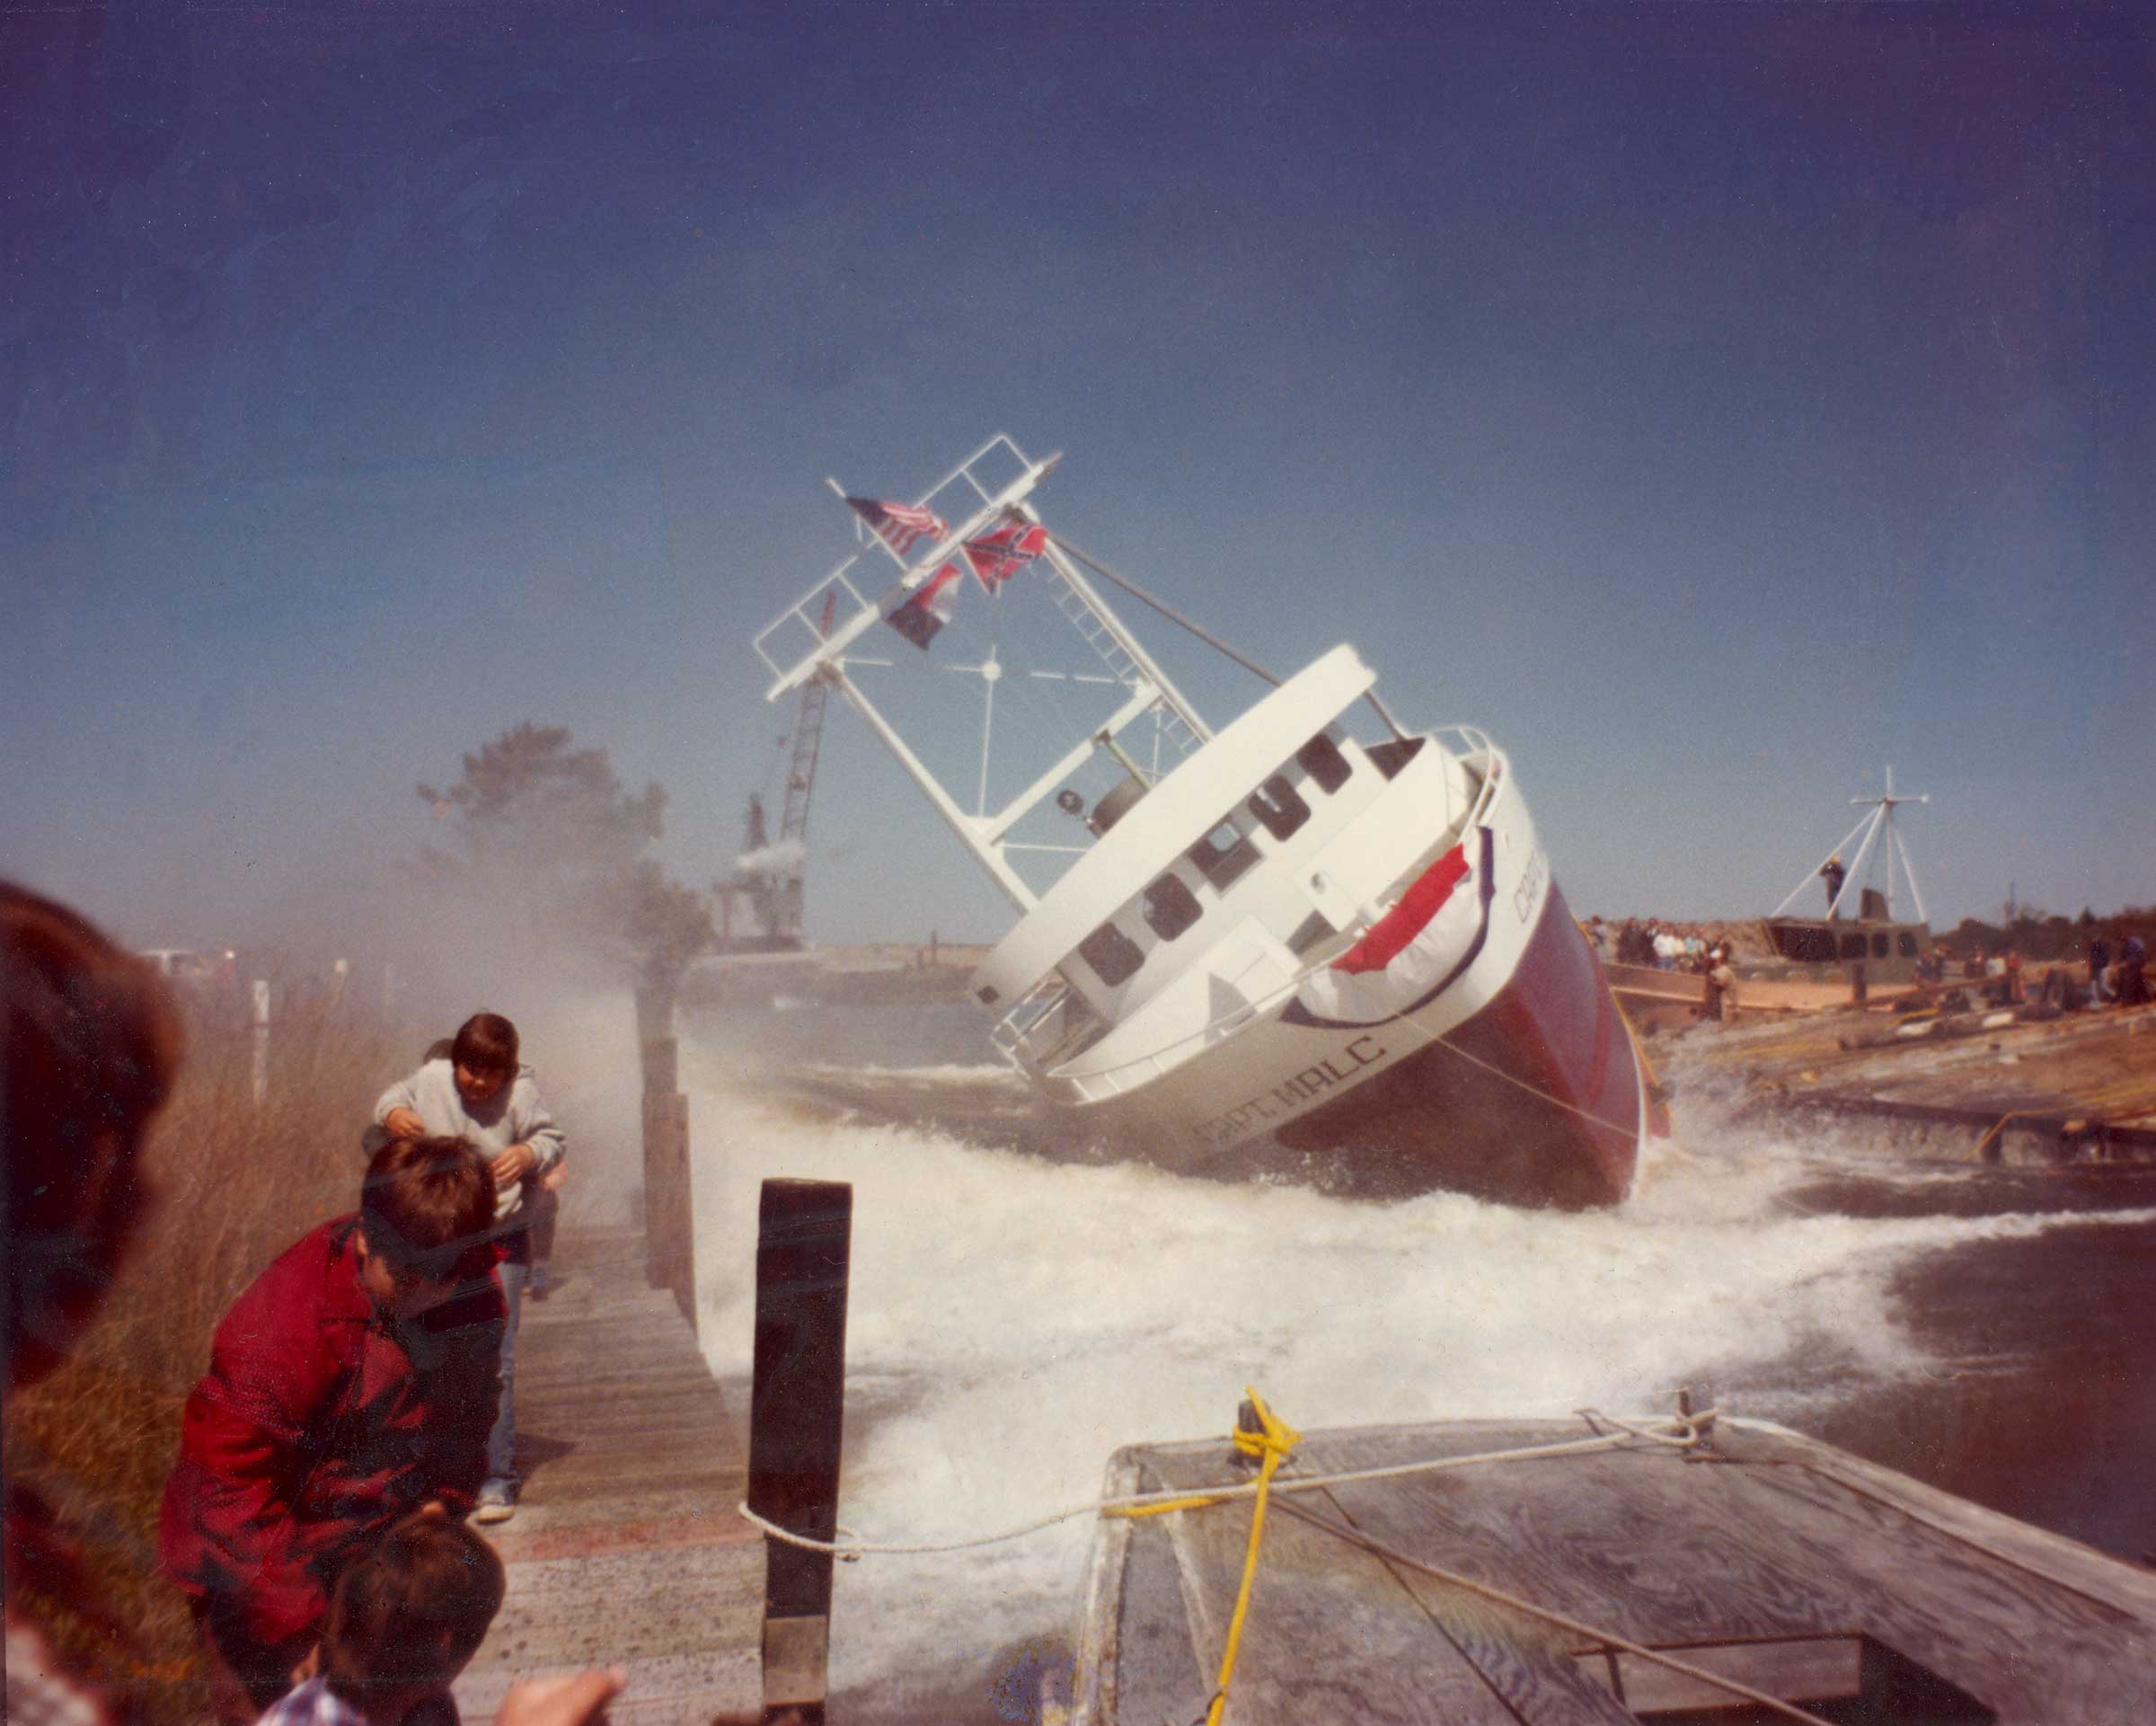 Side-launching Captain Malcom in 1979